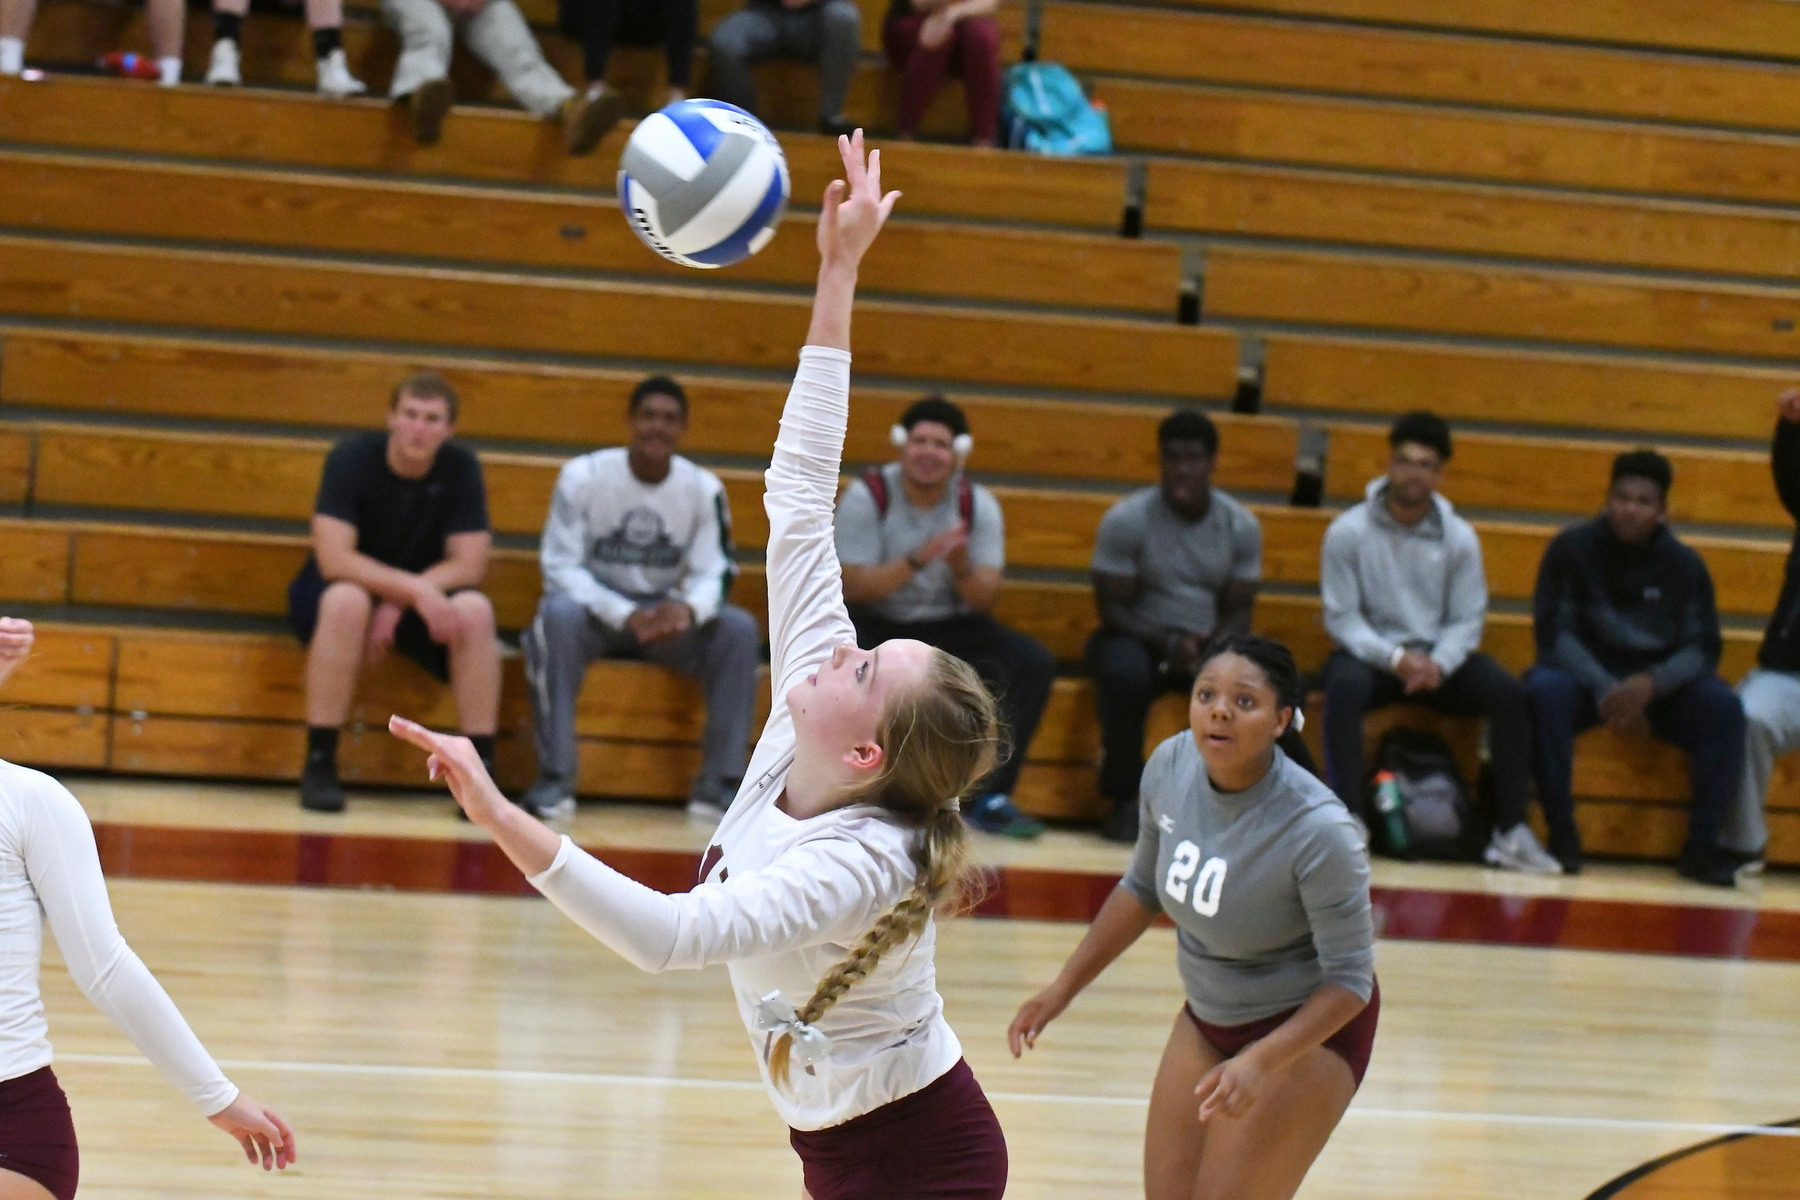 Volleyball: Norwich takes GNAC match from Saint Joseph's, 3-1